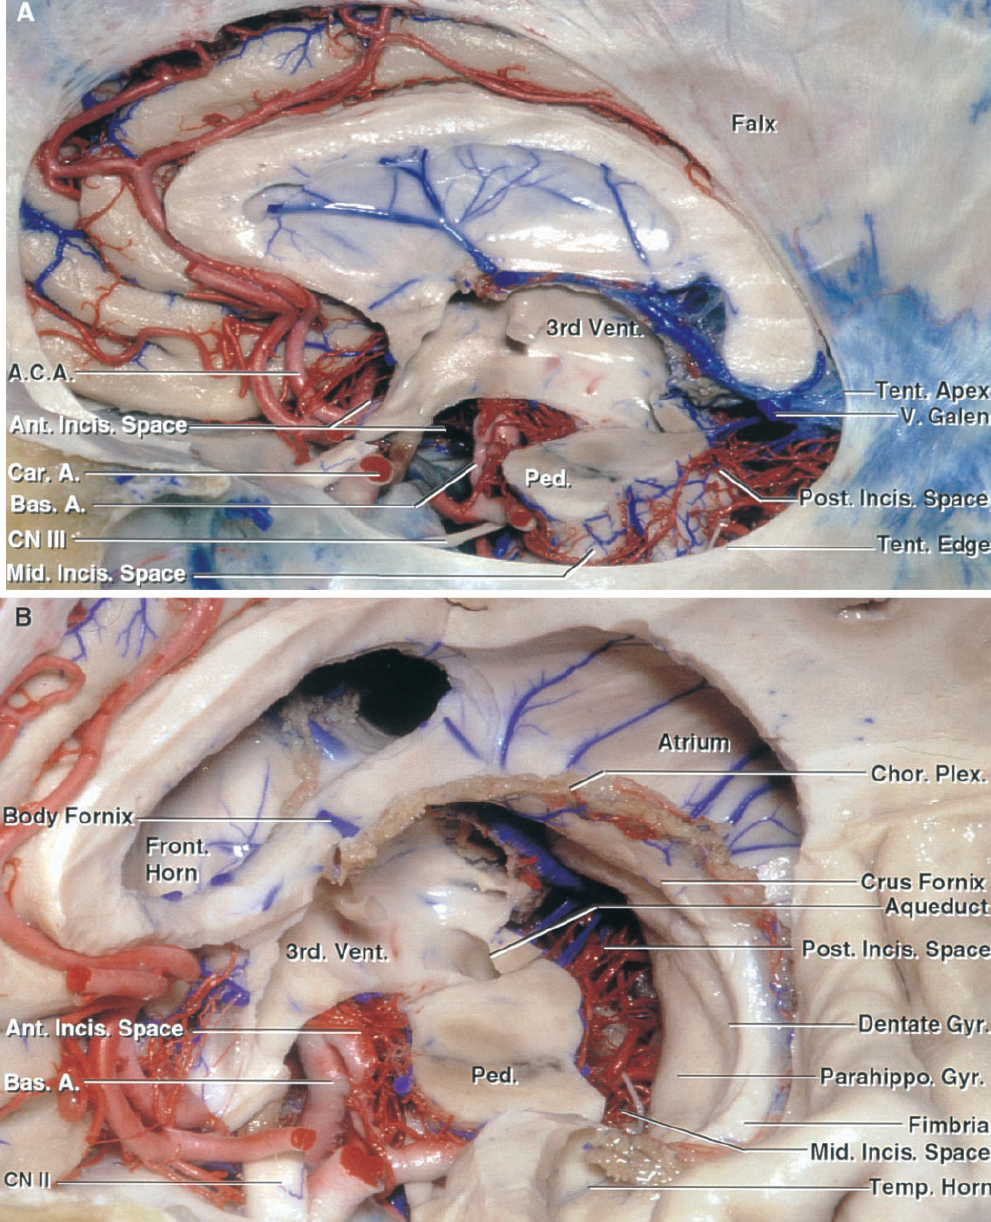 FIGURE 5.1. Tentorial incisura. A, the left cerebral hemisphere has been removed. The tentorial incisura is located between the tentorial edges and is the only site of communication behind the supra and infratentorial spaces. The tentorial apex is located at the junction of the vein of Galen and the straight sinus. The tentorial edges slope downward from the apex. The free edge passes along the side of the brainstem and anteriorly blends into the dura covering the petrous apex and the anterior and posterior clinoid processes. The incisura, in relation to the midbrain, is divided into anterior, middle, and posterior spaces. The anterior incisural space extends above the optic chiasm to the lamina terminalis and below the chiasm and third ventricular floor to the interpeduncular fossa. The middle incisural space is located between the midbrain and tentorial edge, opens upward into the ambient and crural cisterns, and extends inferiorly into the anterior part of the cerebellomesencephalic fissure. The posterior incisural space, located between the posterior midbrain and the tentorial apex, encompasses the quadrigeminal cistern, which extends into the cerebellomesencephalic fissure and along the outer surface of the upper part of the fourth ventricular roof. The anterior incisural space, located below the frontal horn, contains the basilar bifurcation. The PCA and SCA arise in the anterior and pass around the brainstem to reach the middle and posterior incisural spaces. The branches of the PCA and SCA pass through the lateral part of the posterior incisural space, and the large venous structures converging on the vein of Galen course in the medial part of the posterior incisural space. B, part of the left central hemisphere and all of the left thalamus have been removed, while preserving the fornix and choroid plexus. The frontal horn and anterior part of the third ventricle is located above the anterior incisural space. The middle incisural space is located medial to the temporal horn, between the temporal lobe and midbrain. The posterior incisural space is located between the tentorial apex and posterior midbrain surface. A., artery; A.C.A., anterior cerebral artery; Ant., anterior; Bas., basilar; Car., carotid; Chor., choroid; CN, cranial nerve; Front., frontal; Gyr., gyrus; Incis., incisural; Mid., middle; Parahippo., parahippocampal; Ped., peduncle; Plex., plexus; Post., posterior; Temp., temporal; Tent., tentorial; V., vein; Vent., ventricle.